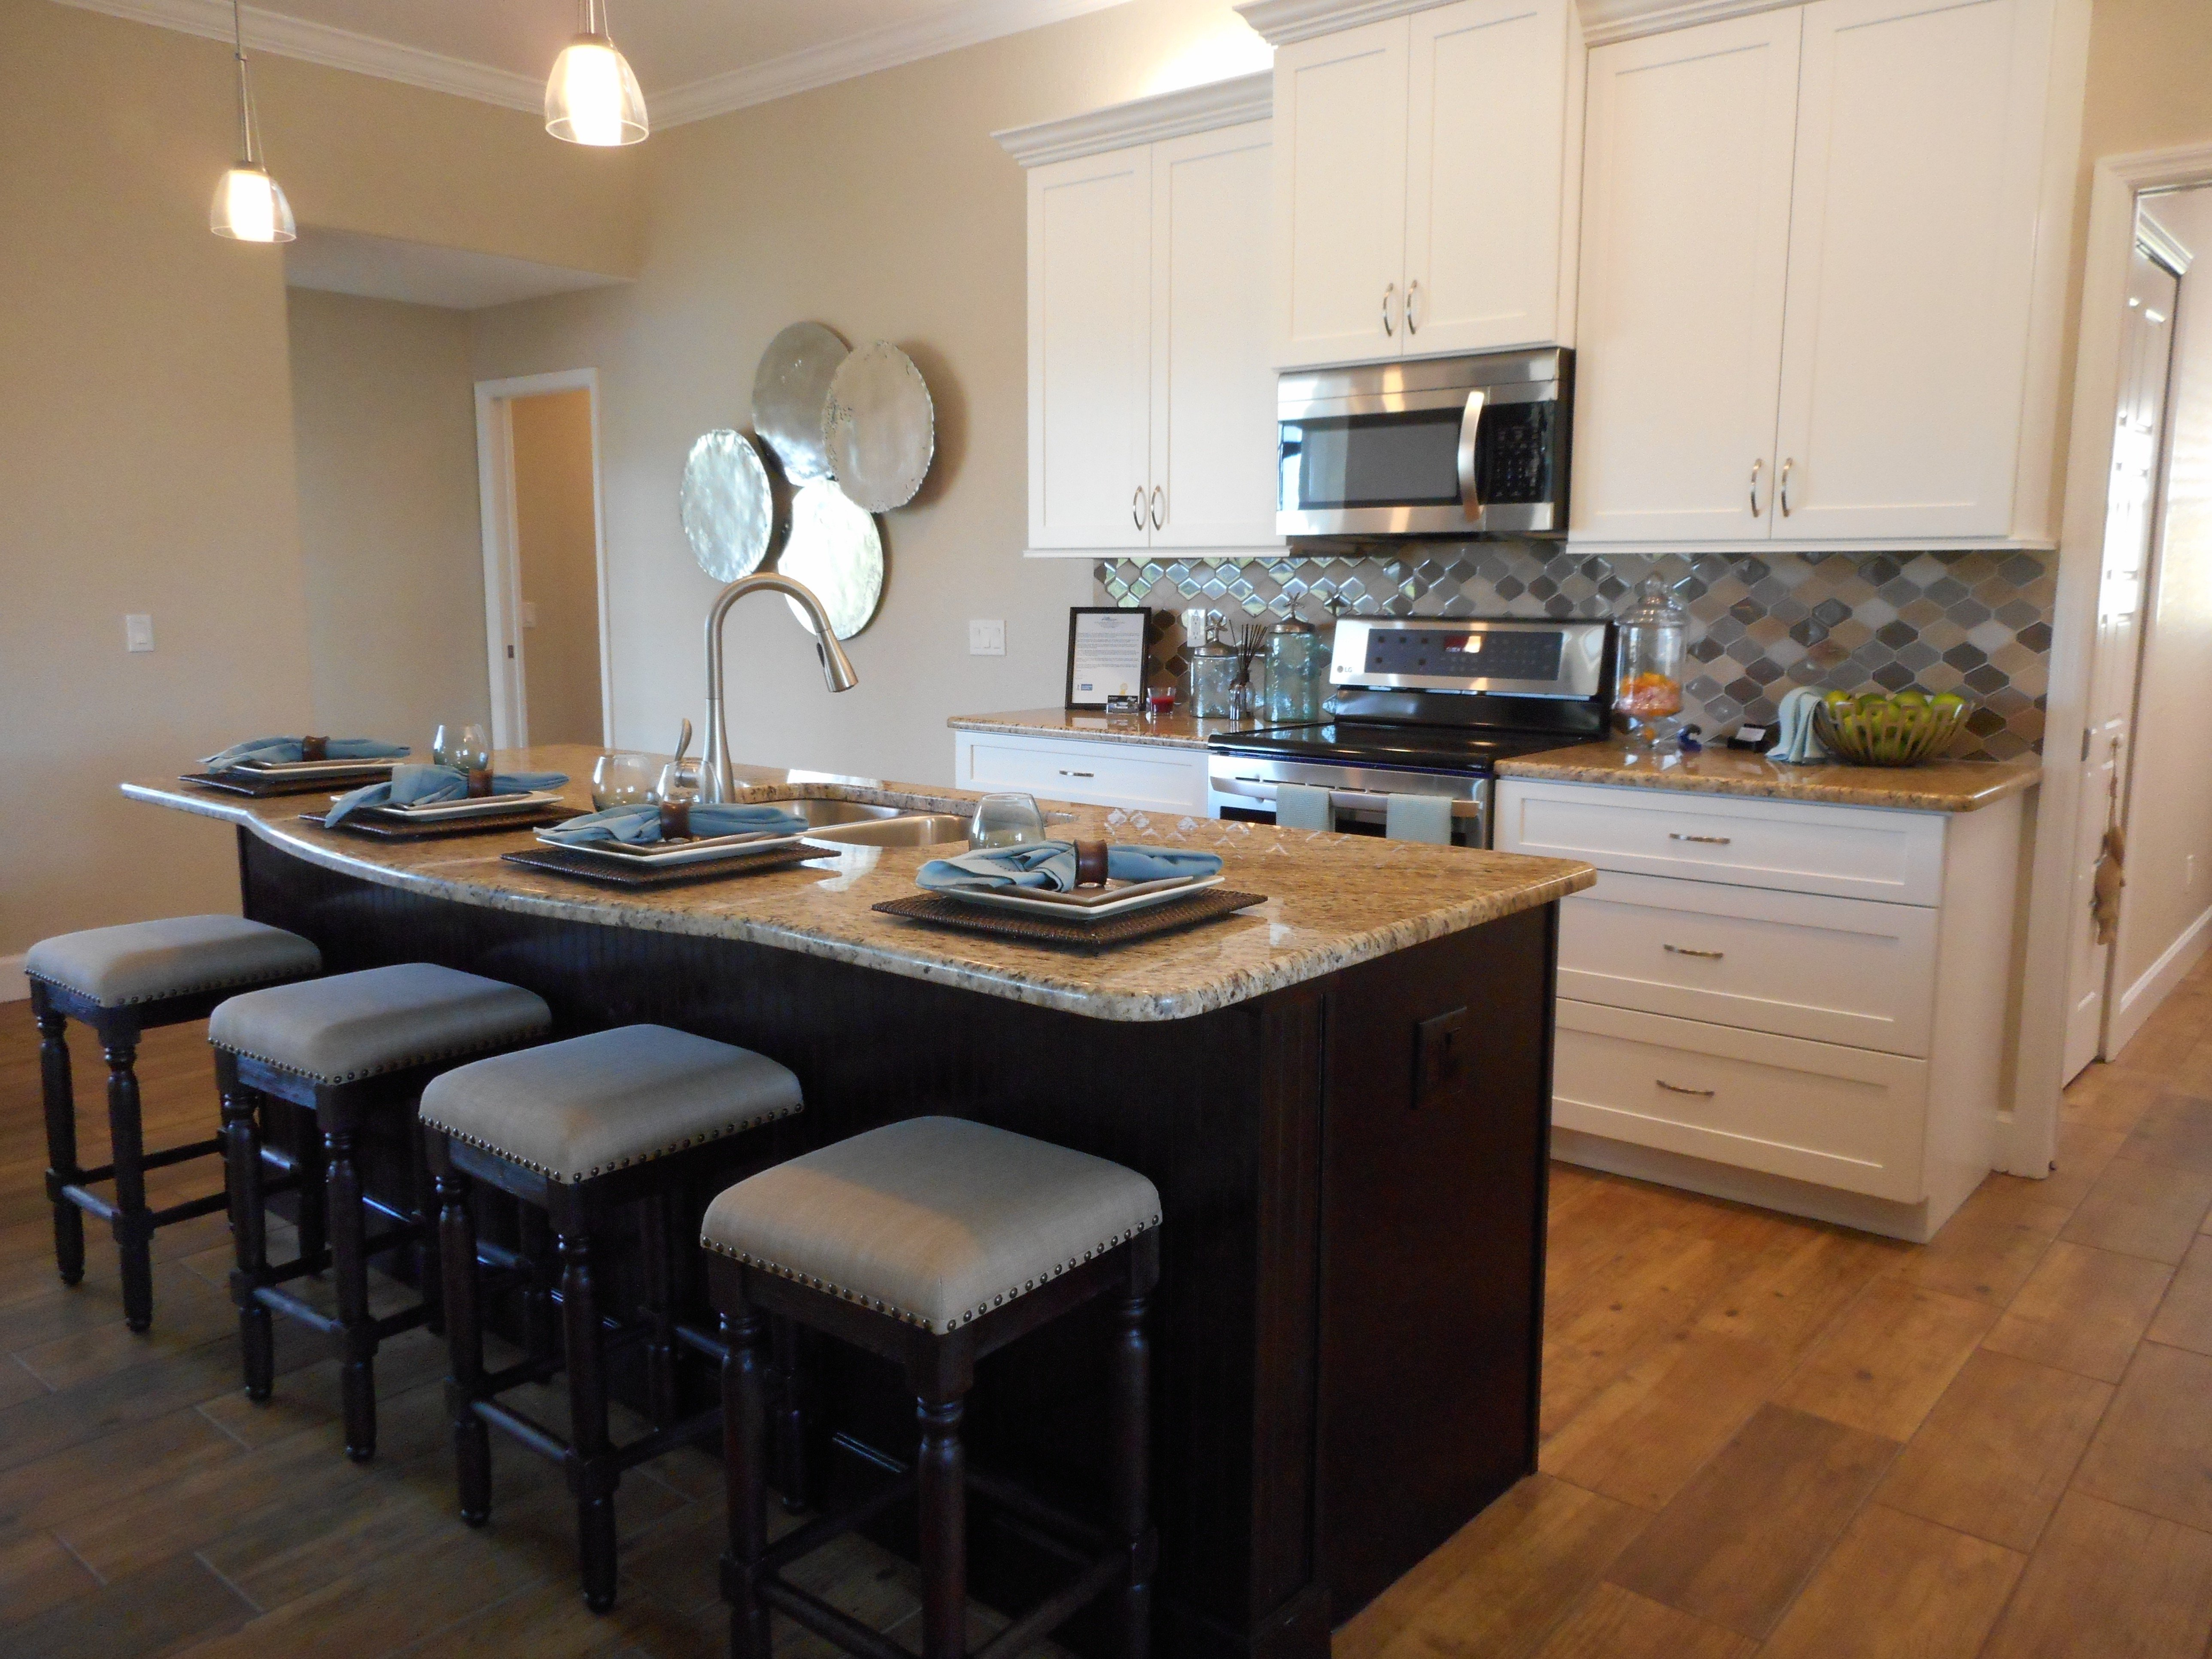 Staged photo of a kitchen with an island bar suited for four and wood floors.